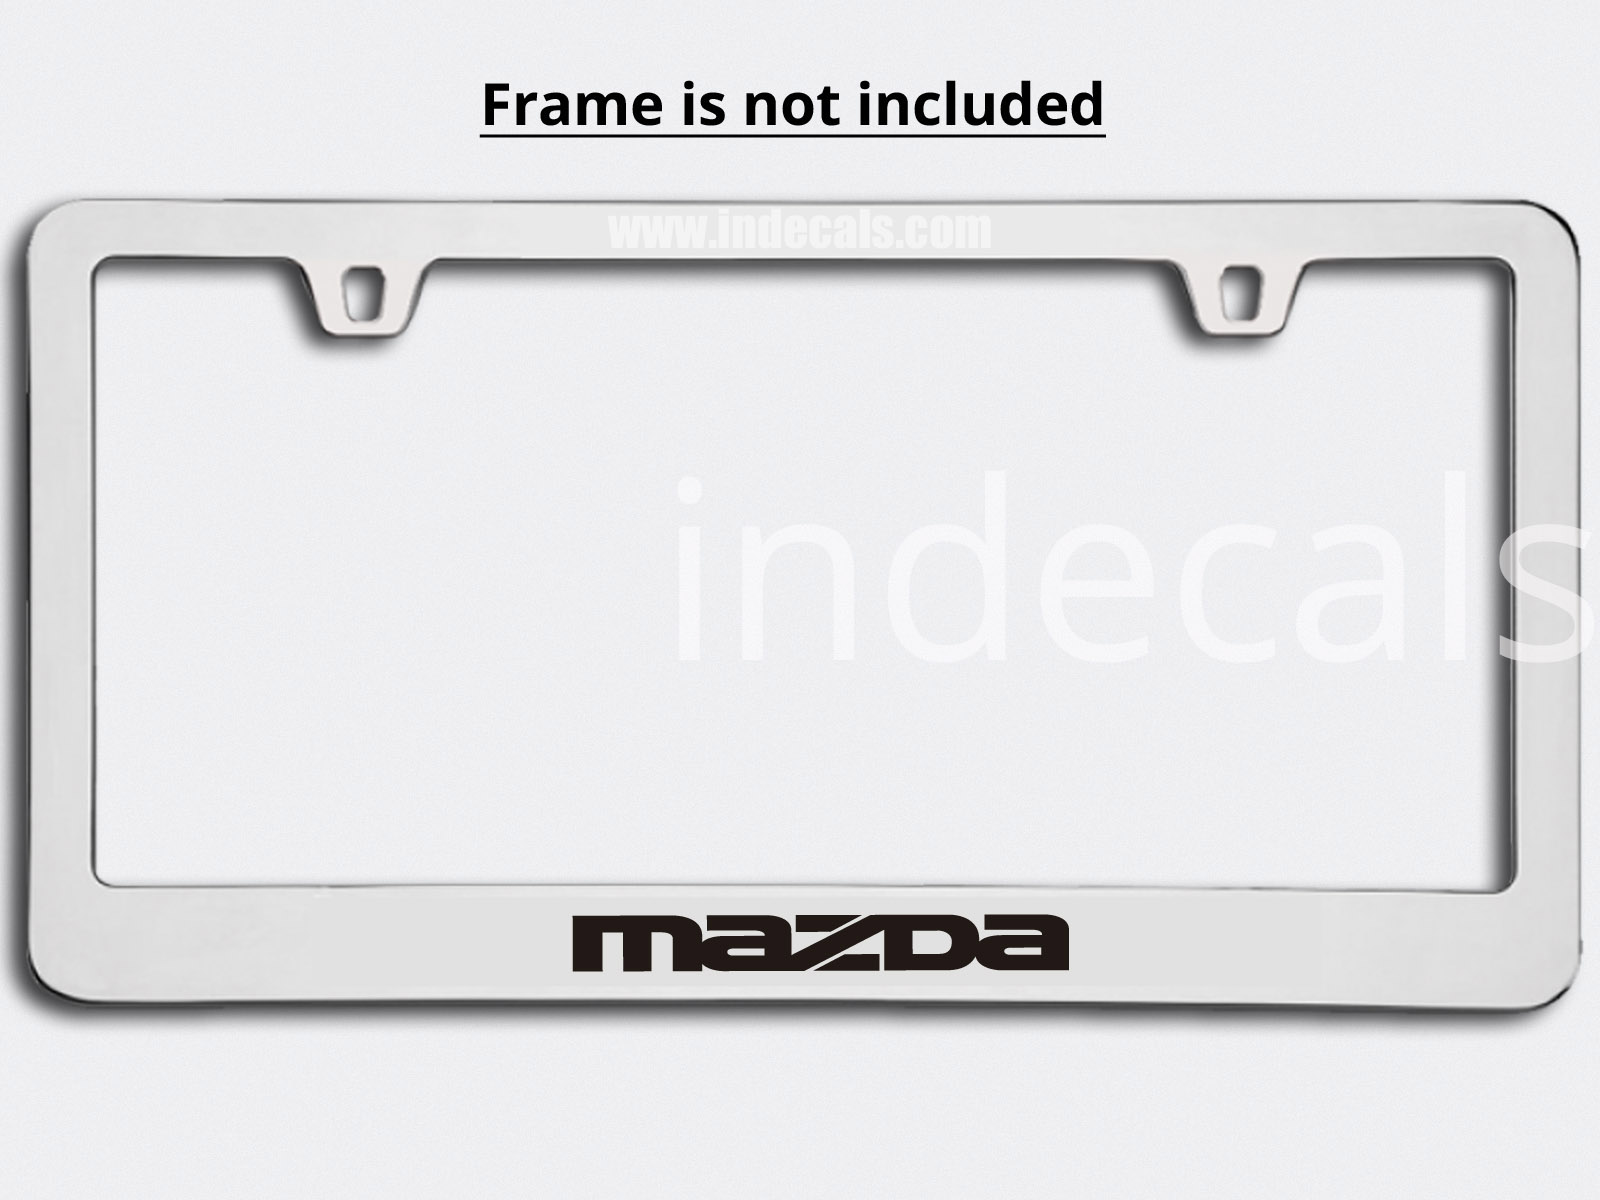 3 x Mazda Stickers for Plate Frame - Black